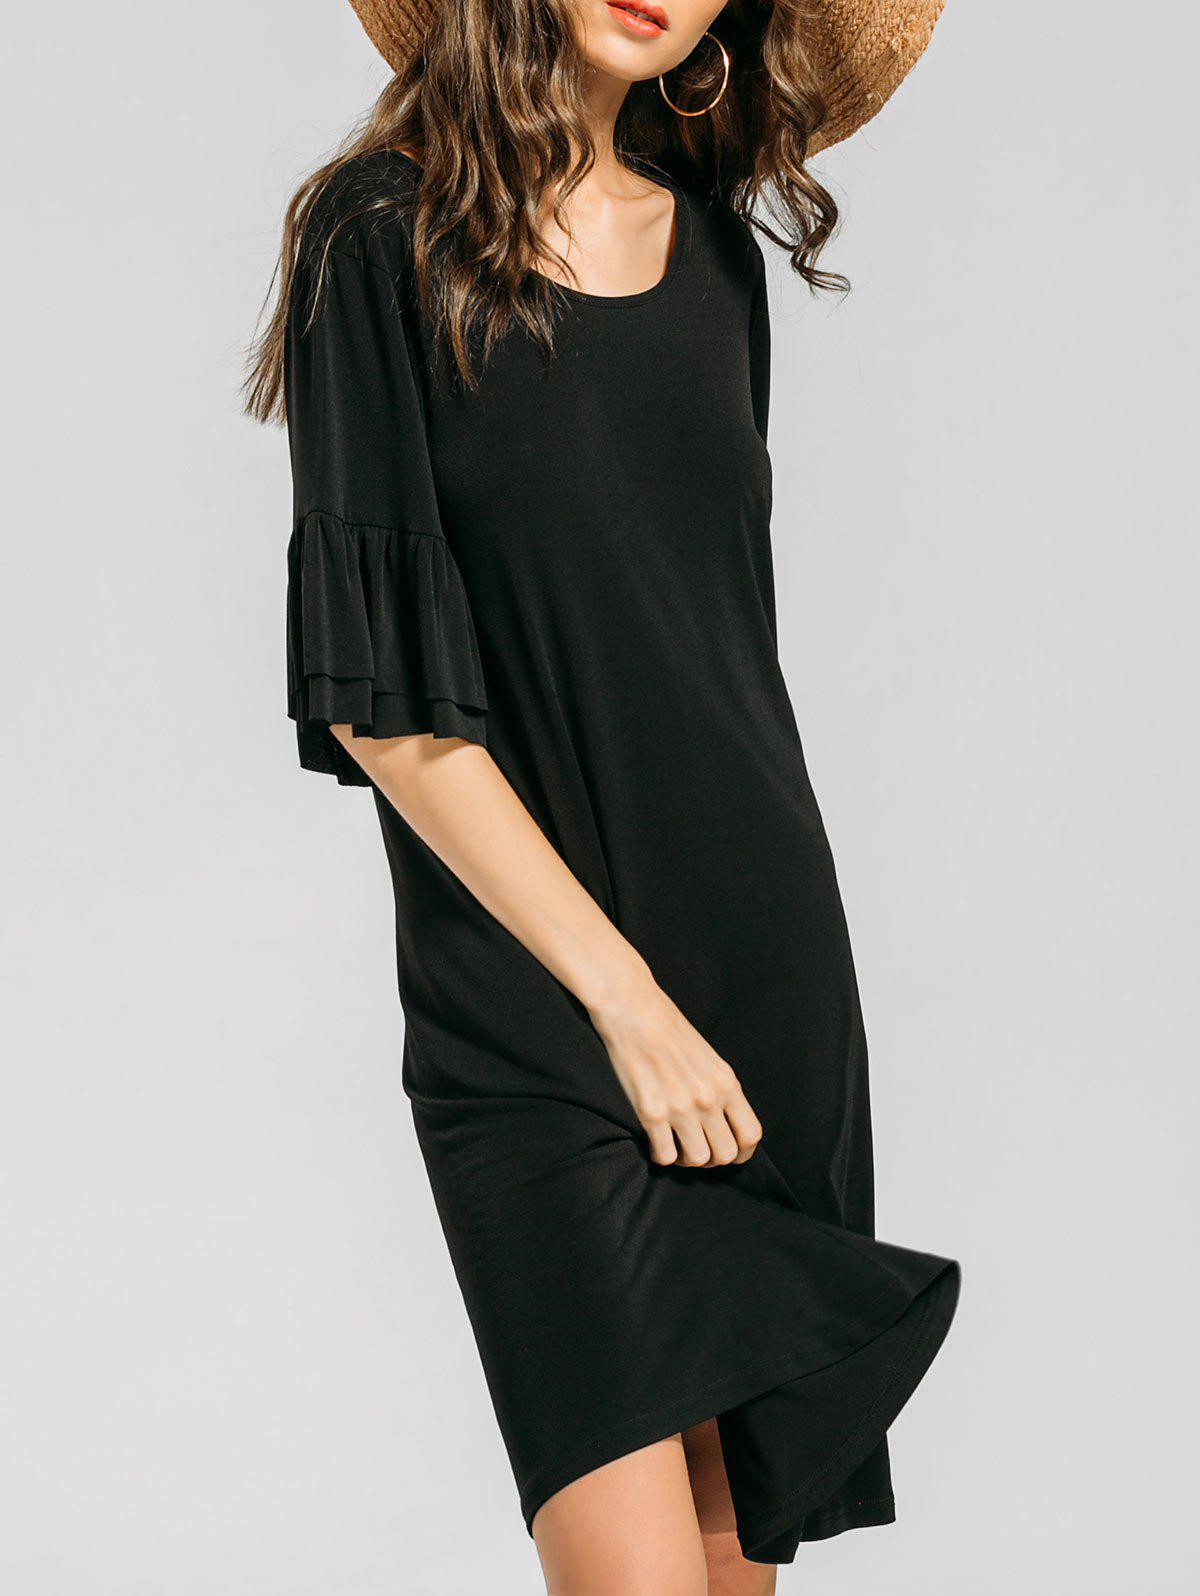 New Ruffles Flare Sleeve Casual Dress